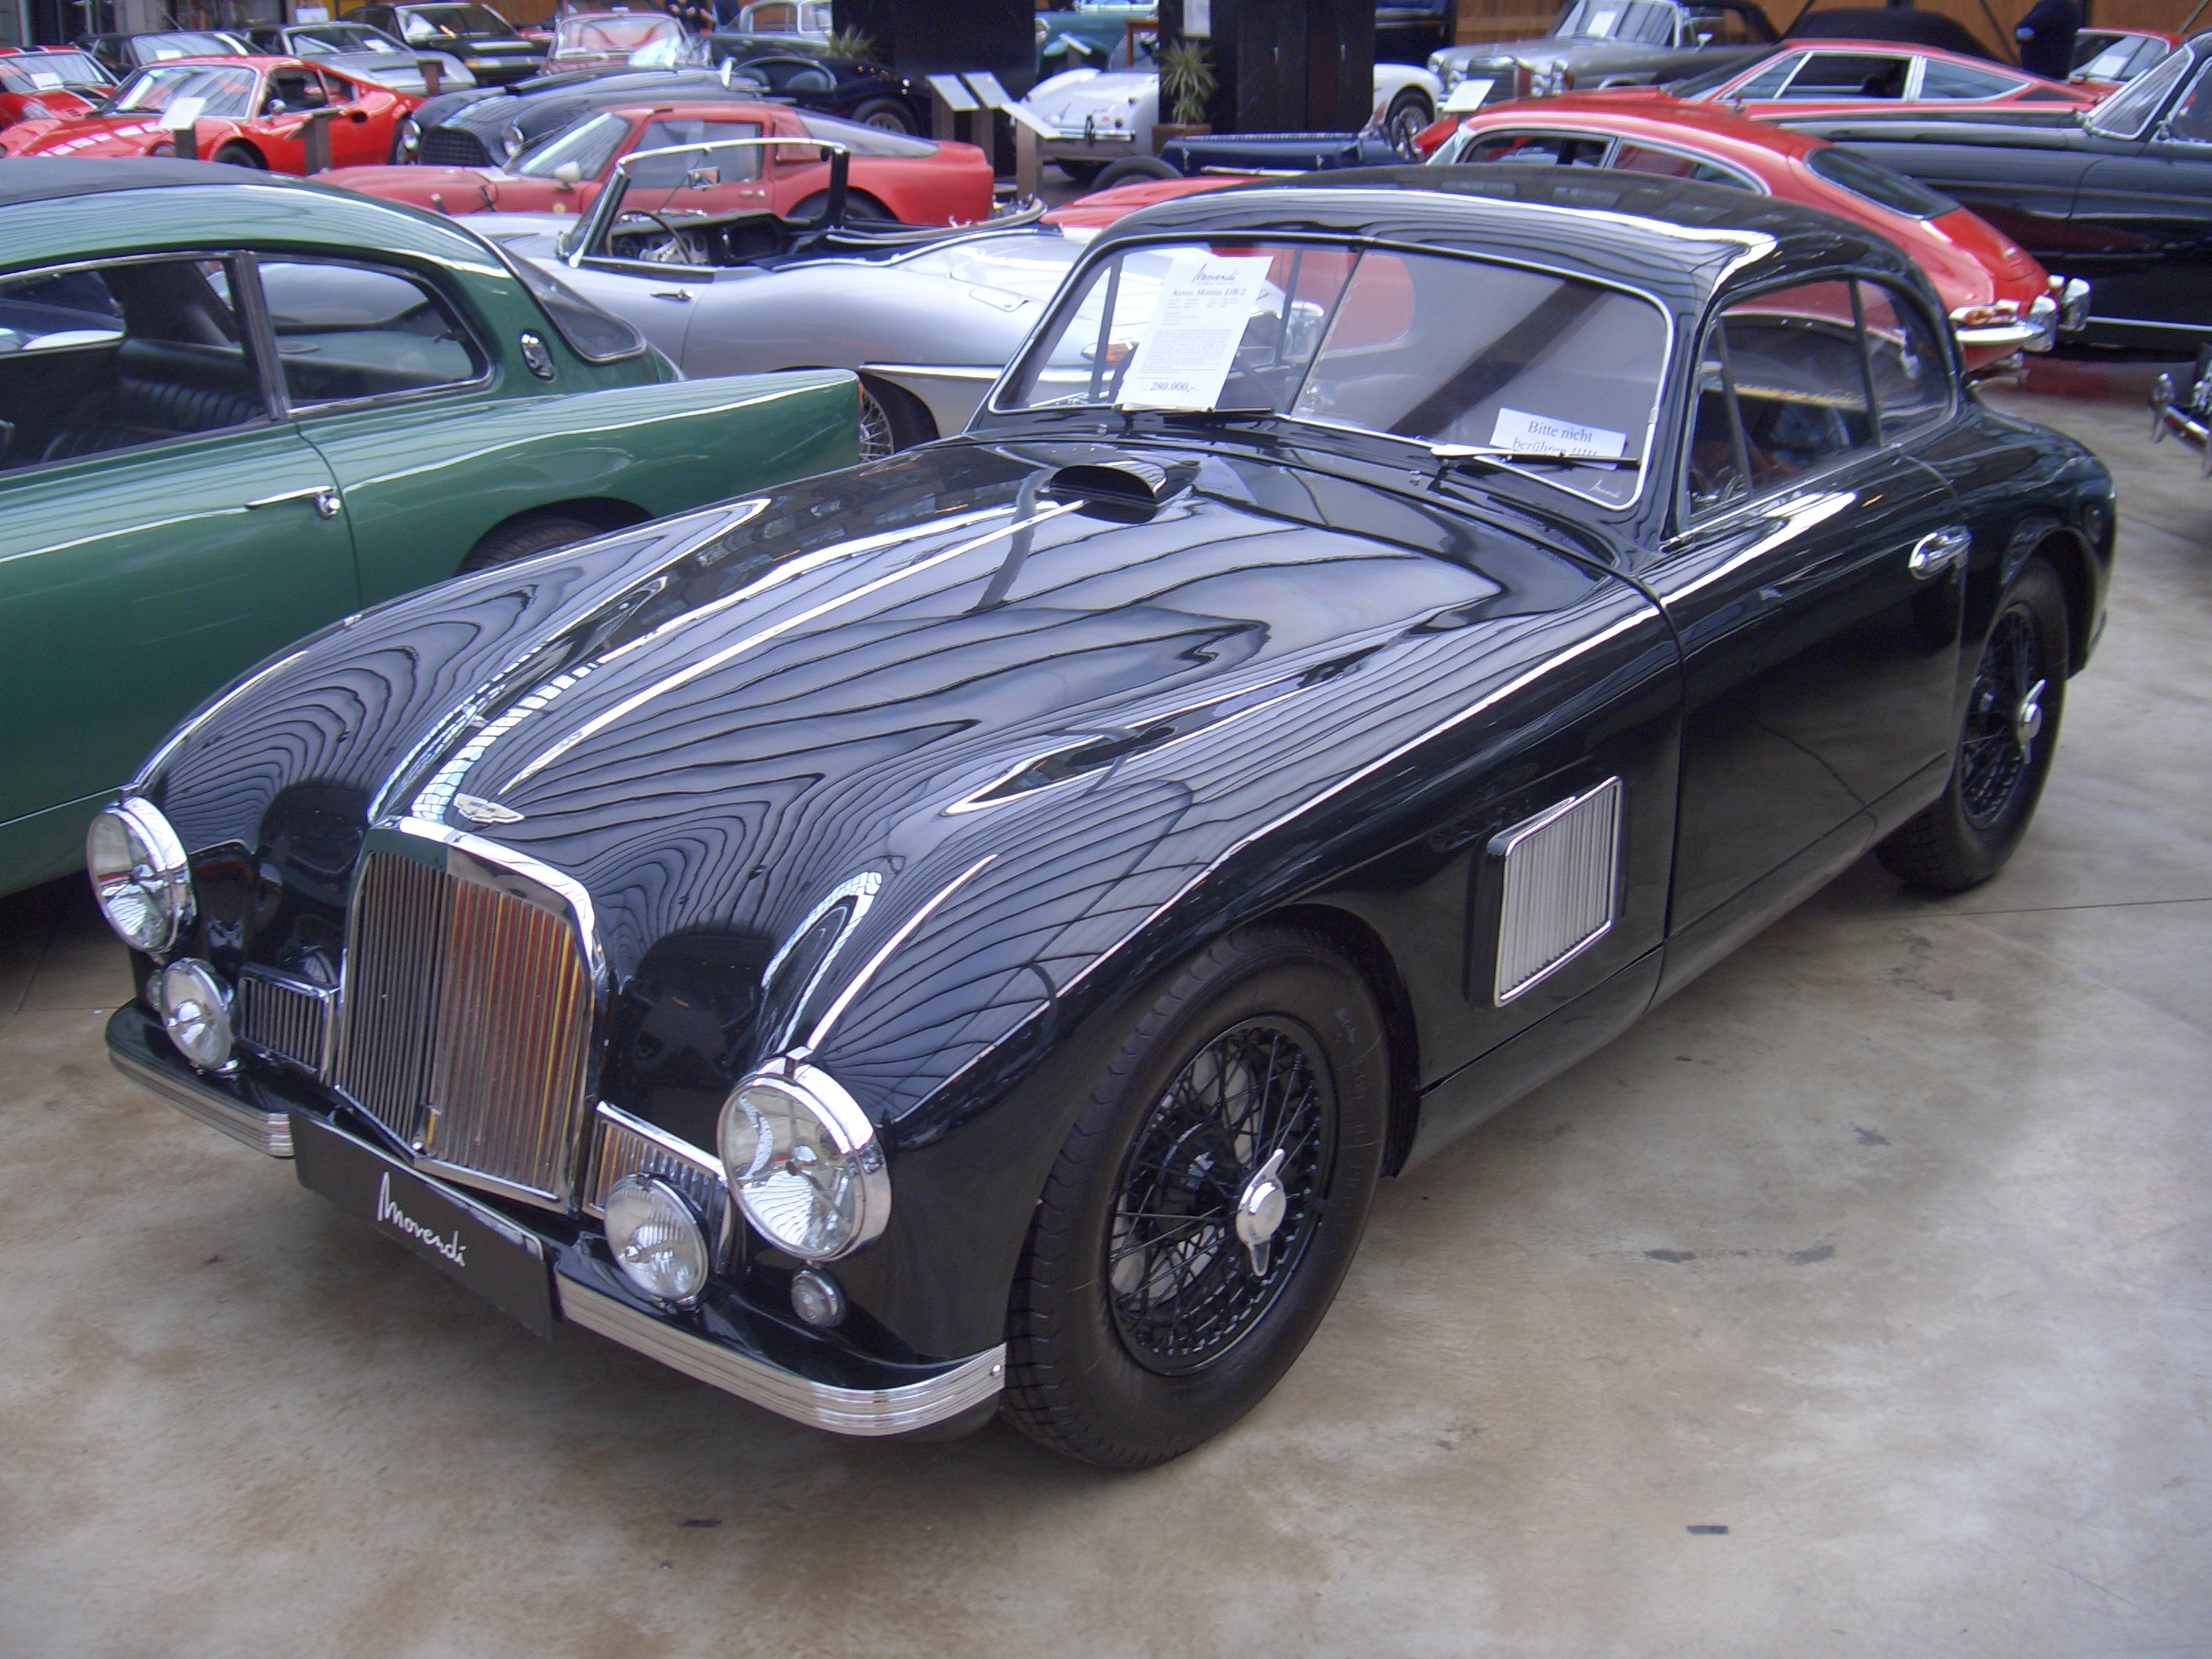 file:aston martin db2 000 000 1951 frontleft 2011-04-17 a